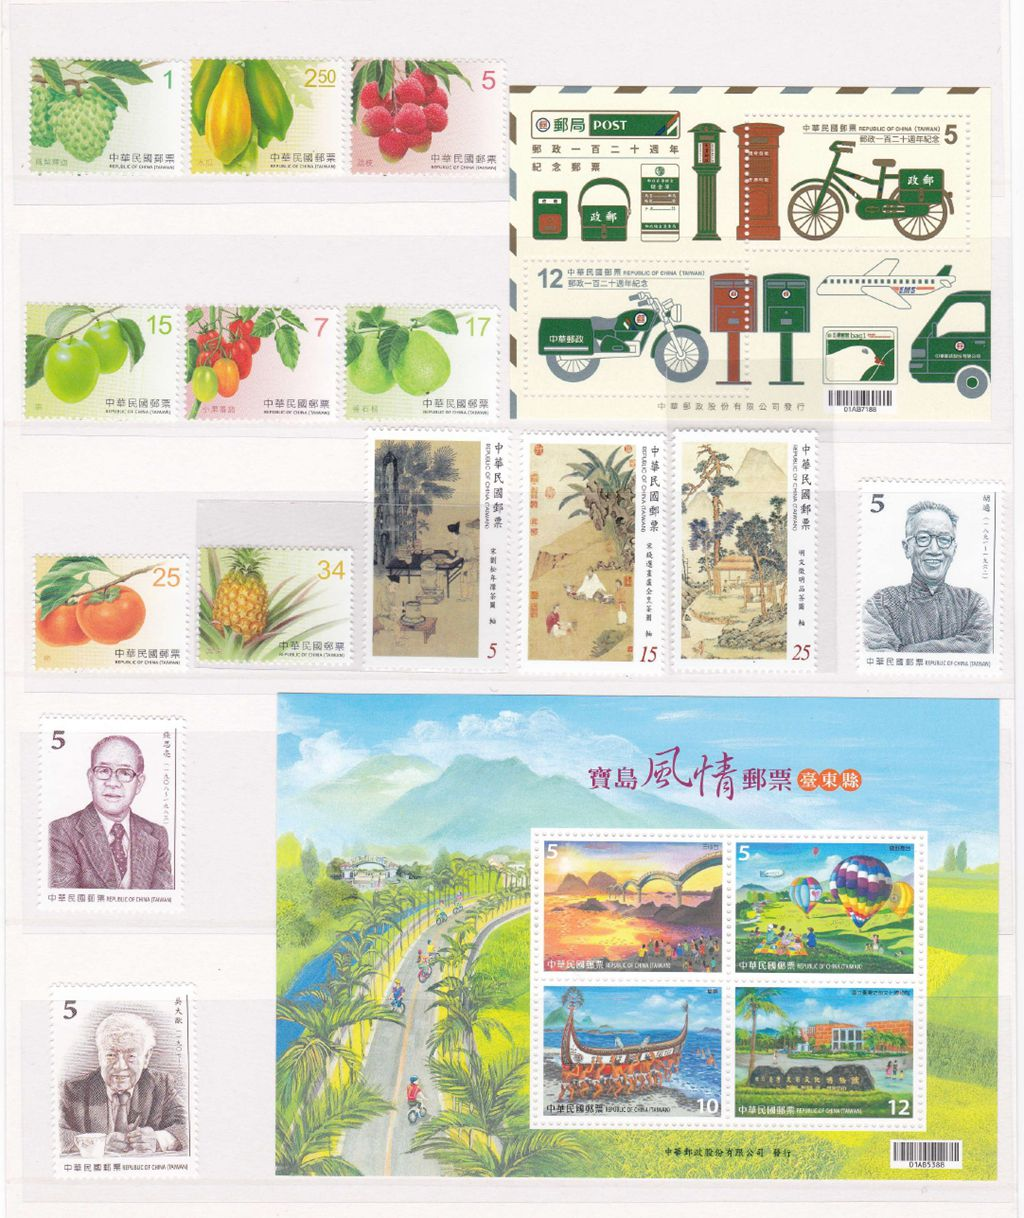 M8303, Taiwan (R.O.China) 2016 Full Year Stamps and MS, with Bamboo Stamp - Click Image to Close